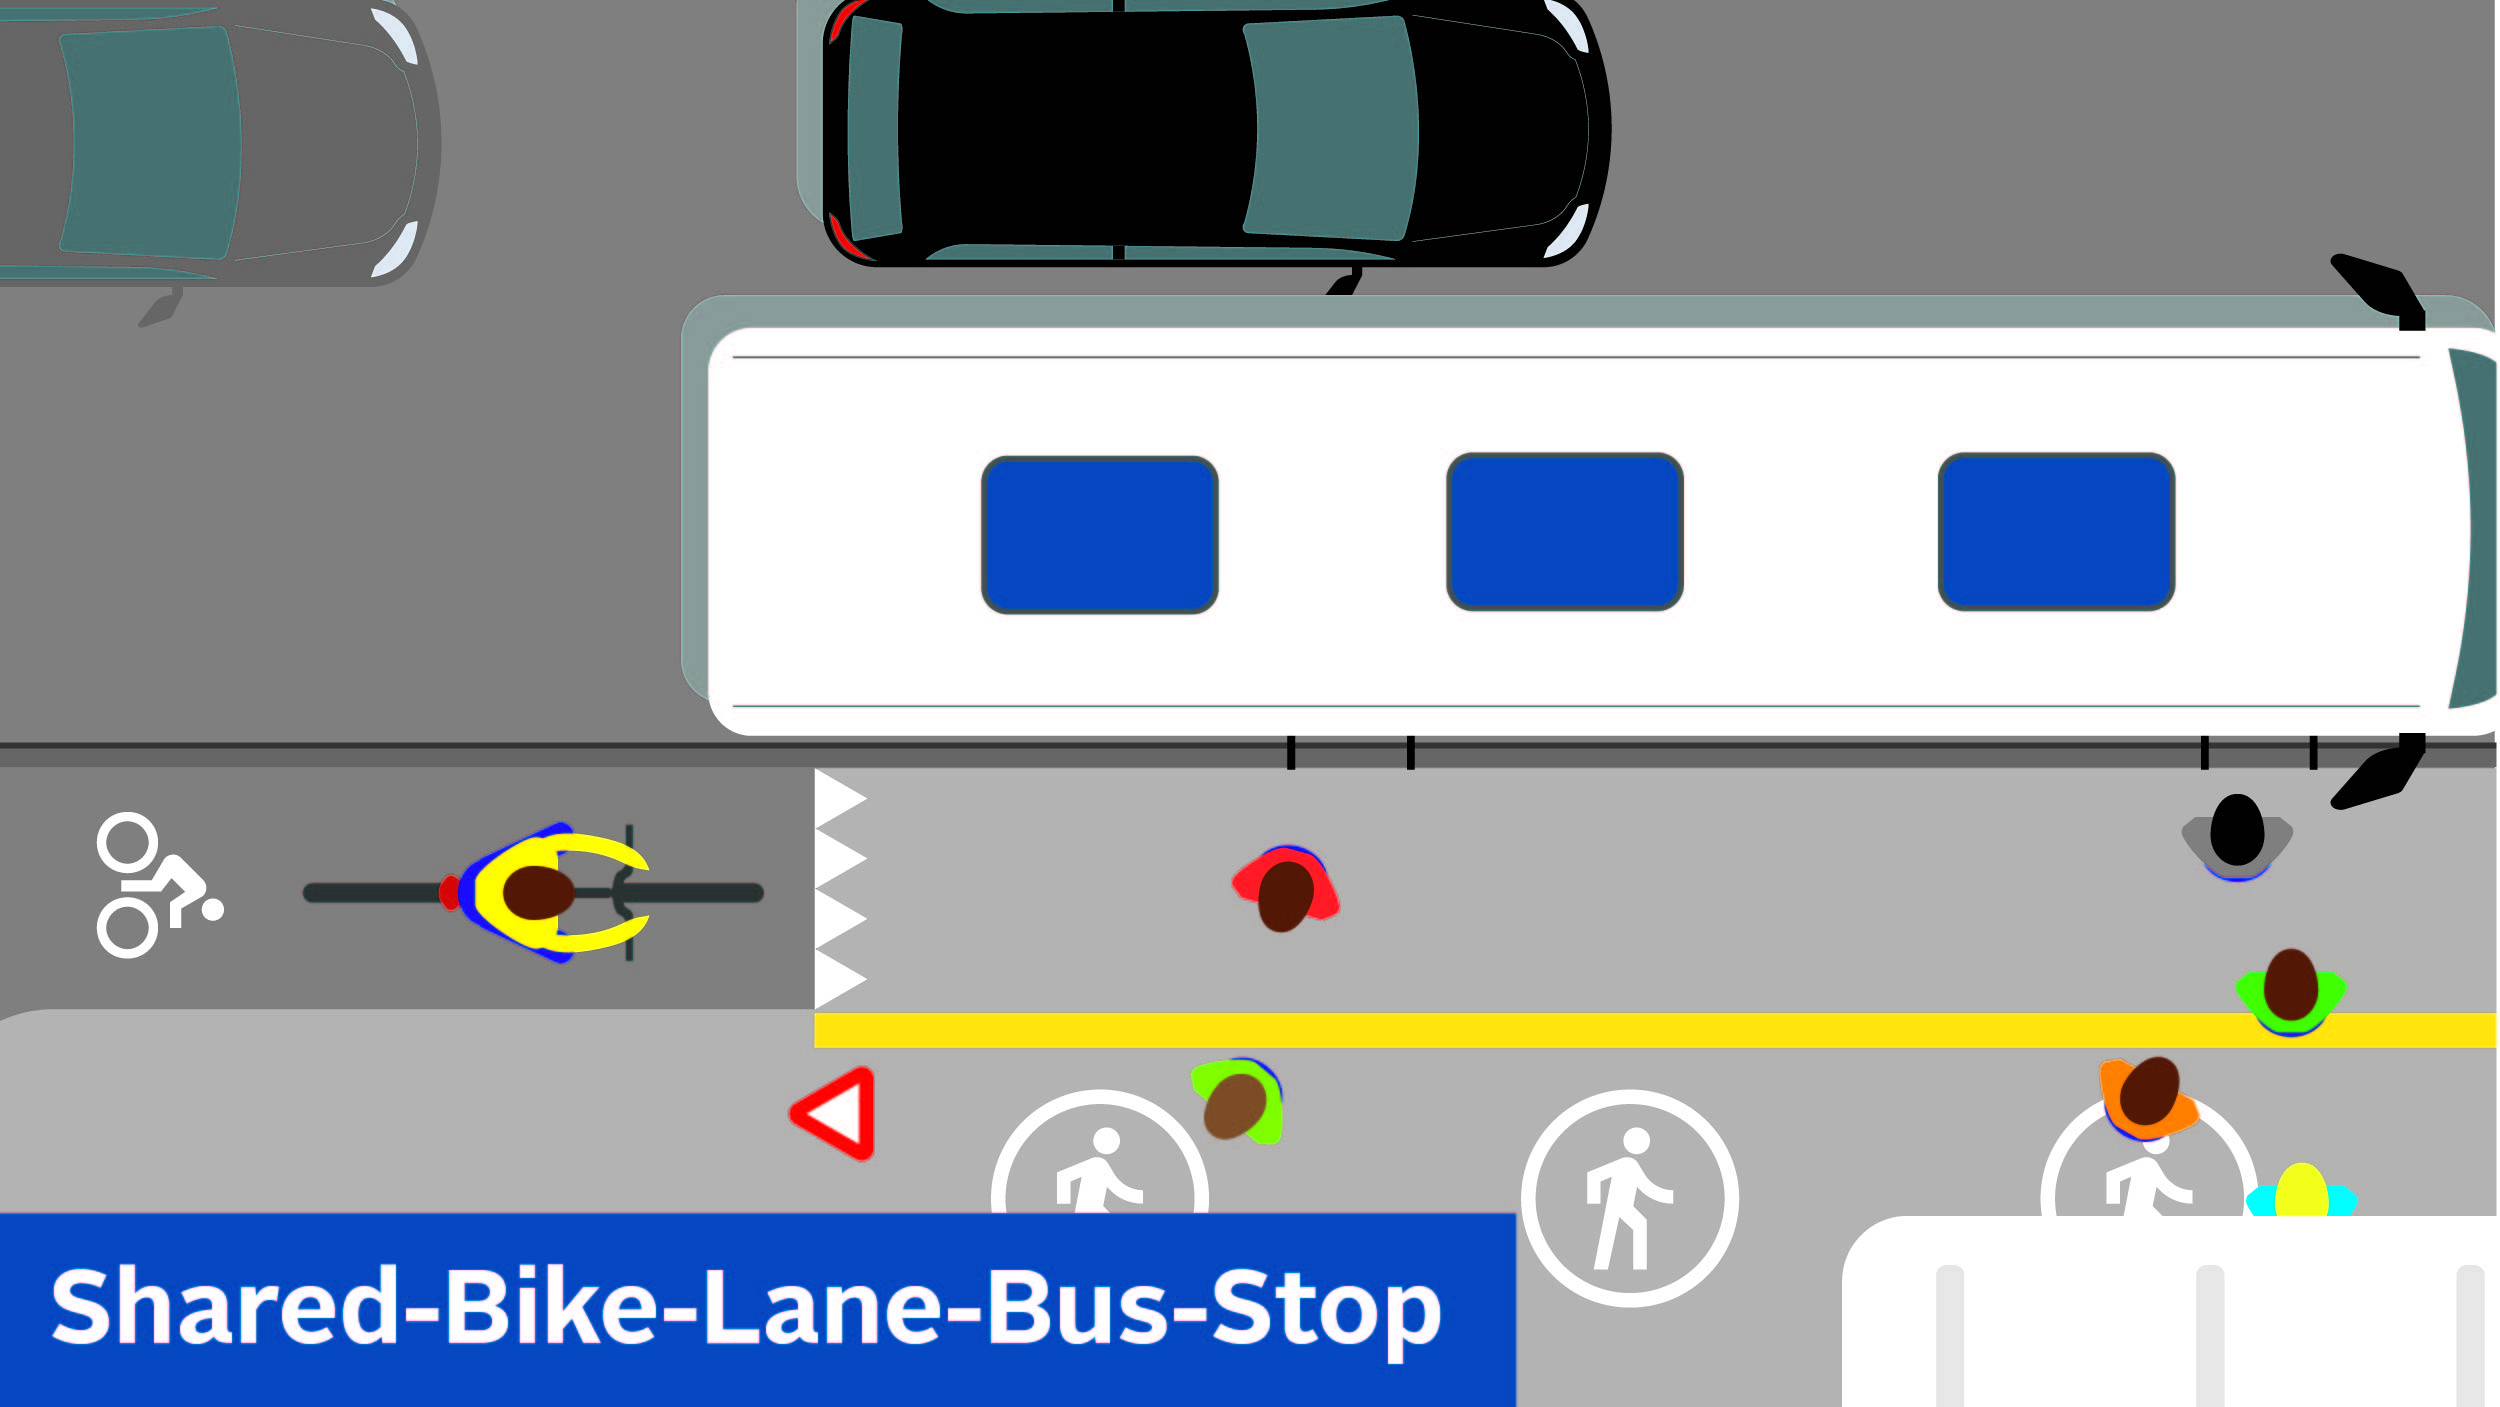 Diagram showing how people walking, cycling, and taking transit should use the shared bike-lane-bus-stop.